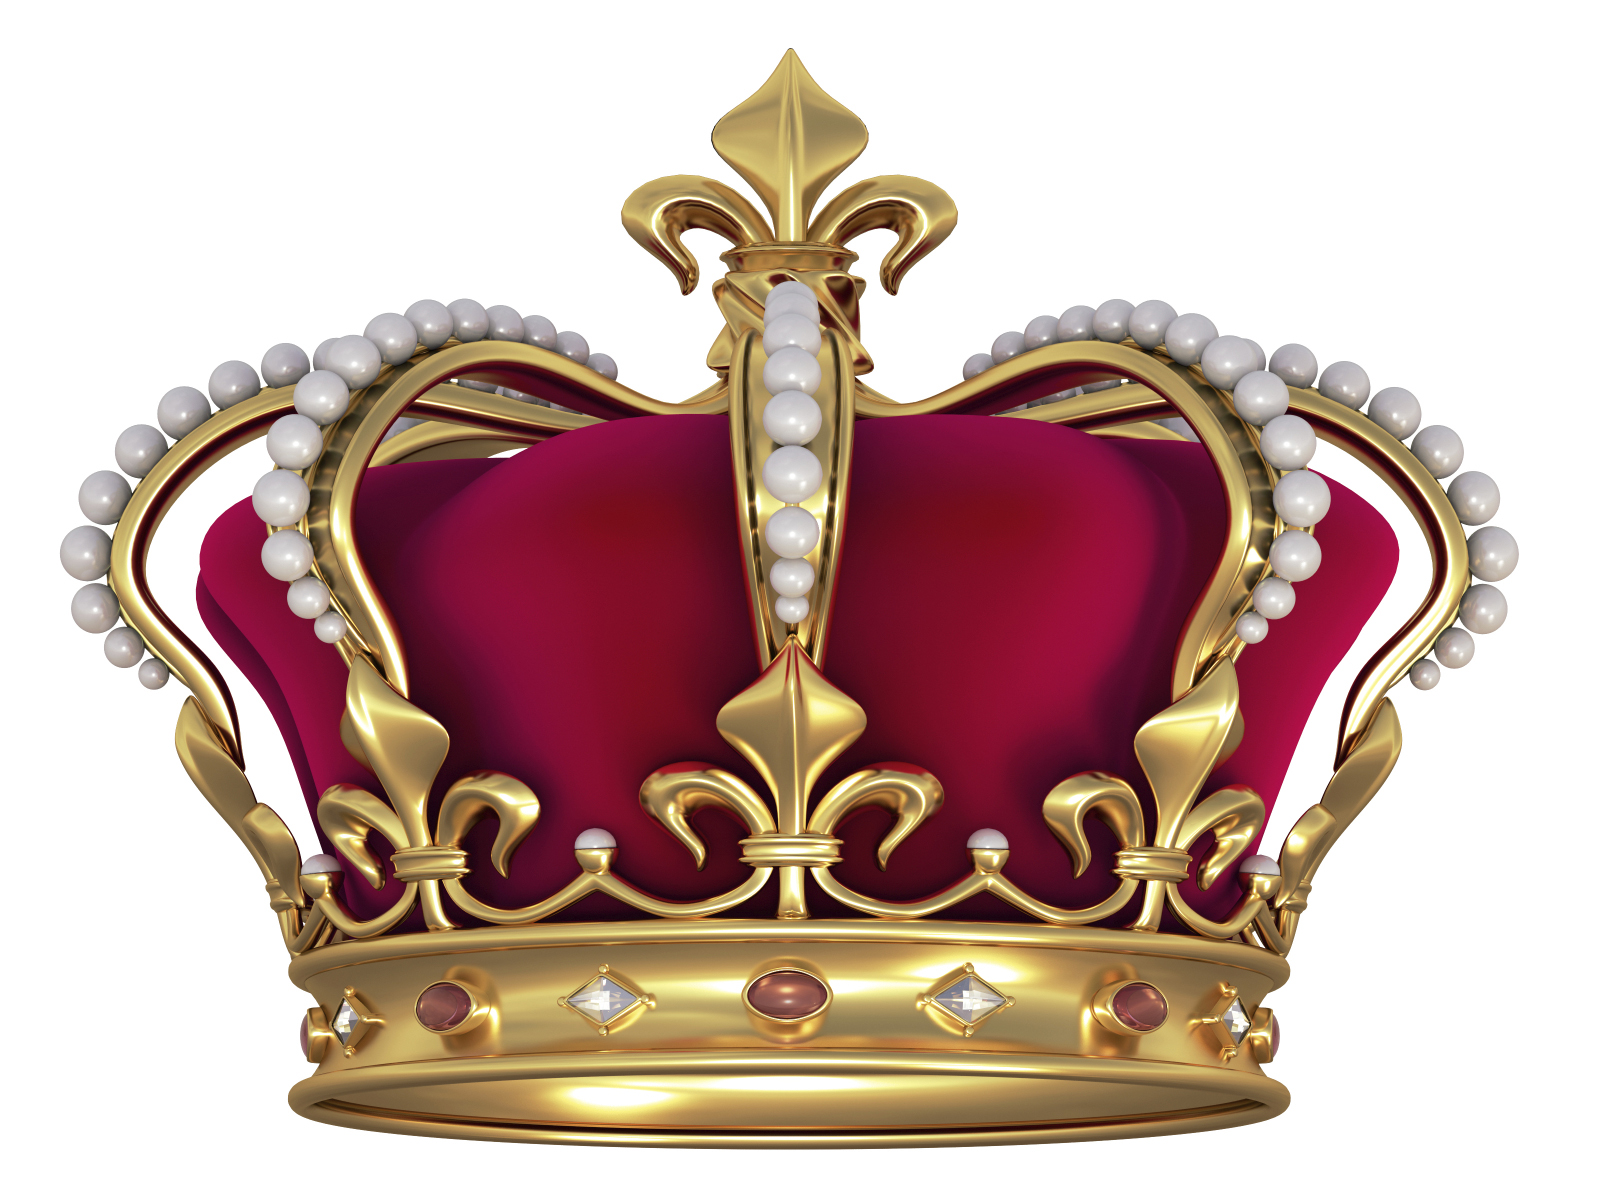 Queen Crown Png Royal Gold Crowns